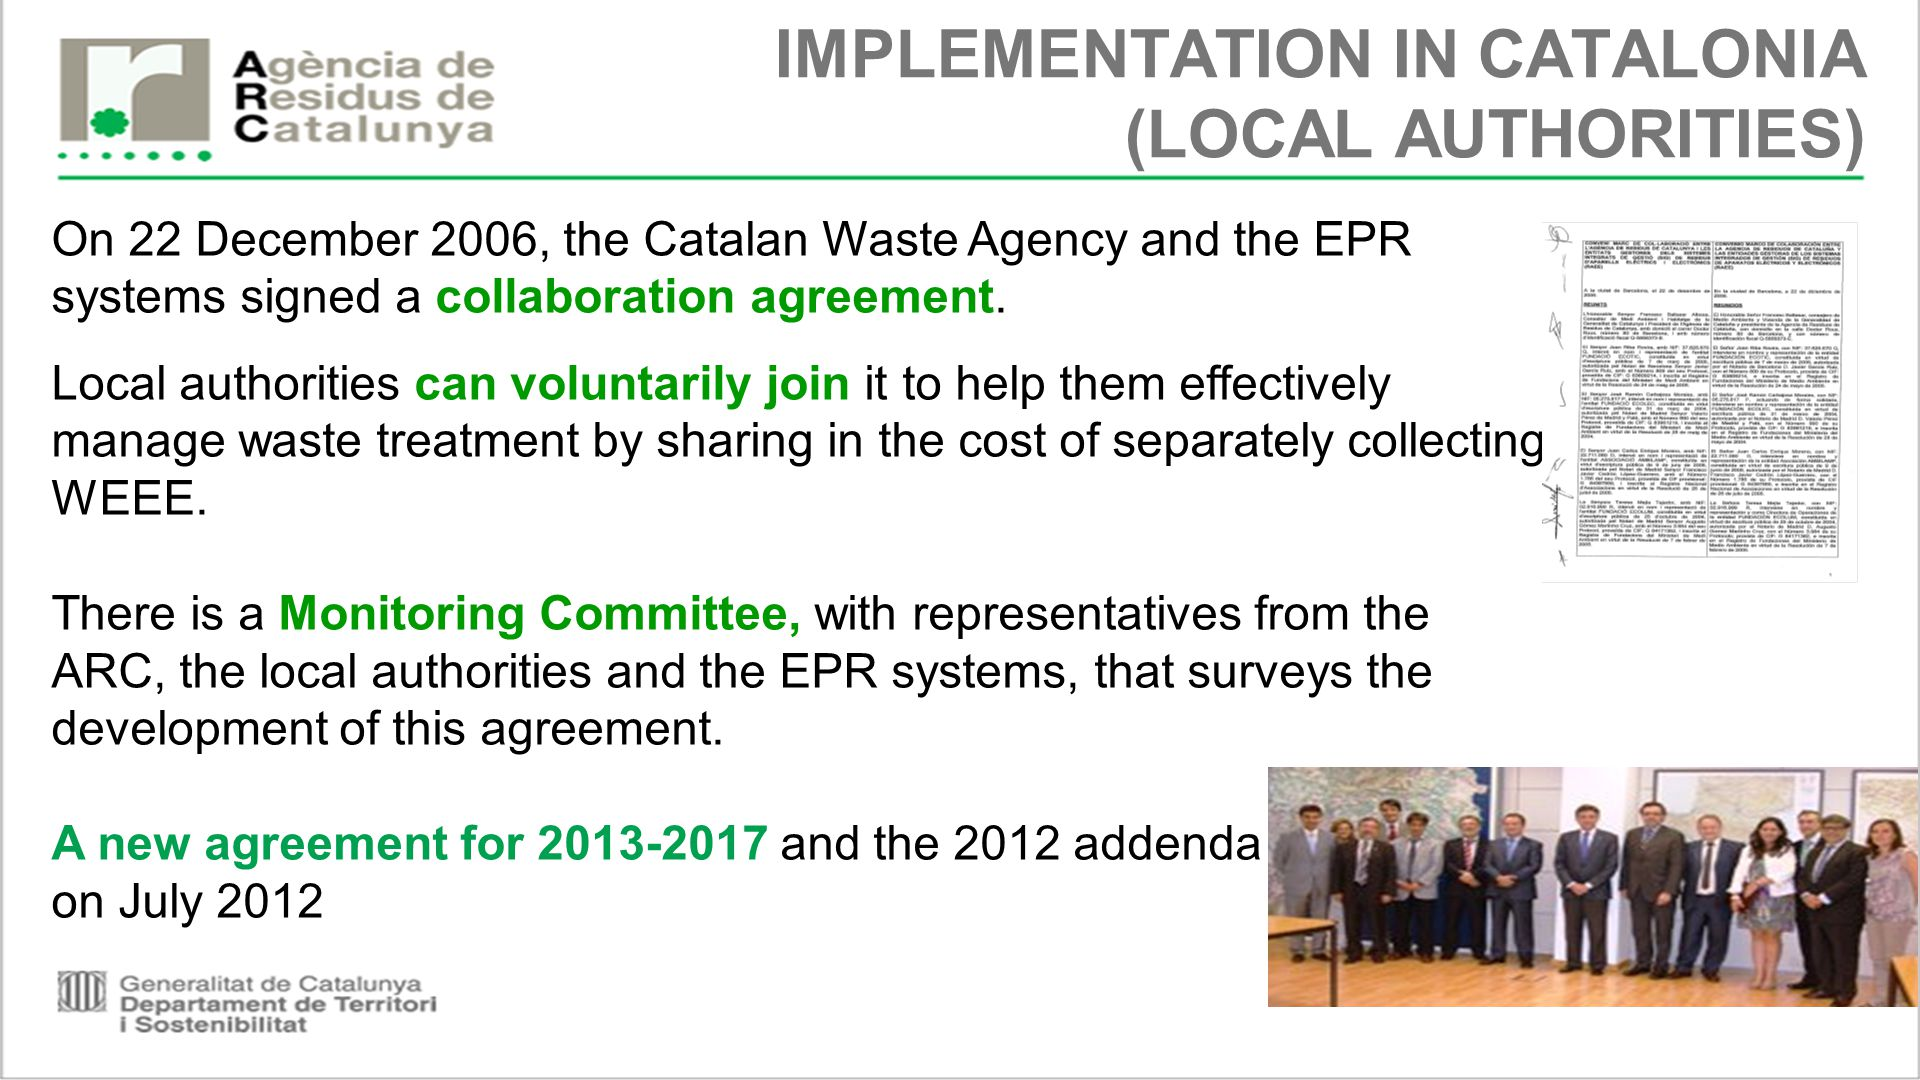 IMPLEMENTATION IN CATALONIA (LOCAL AUTHORITIES) On 22 December 2006, the Catalan Waste Agency and the EPR systems signed a collaboration agreement. Lo